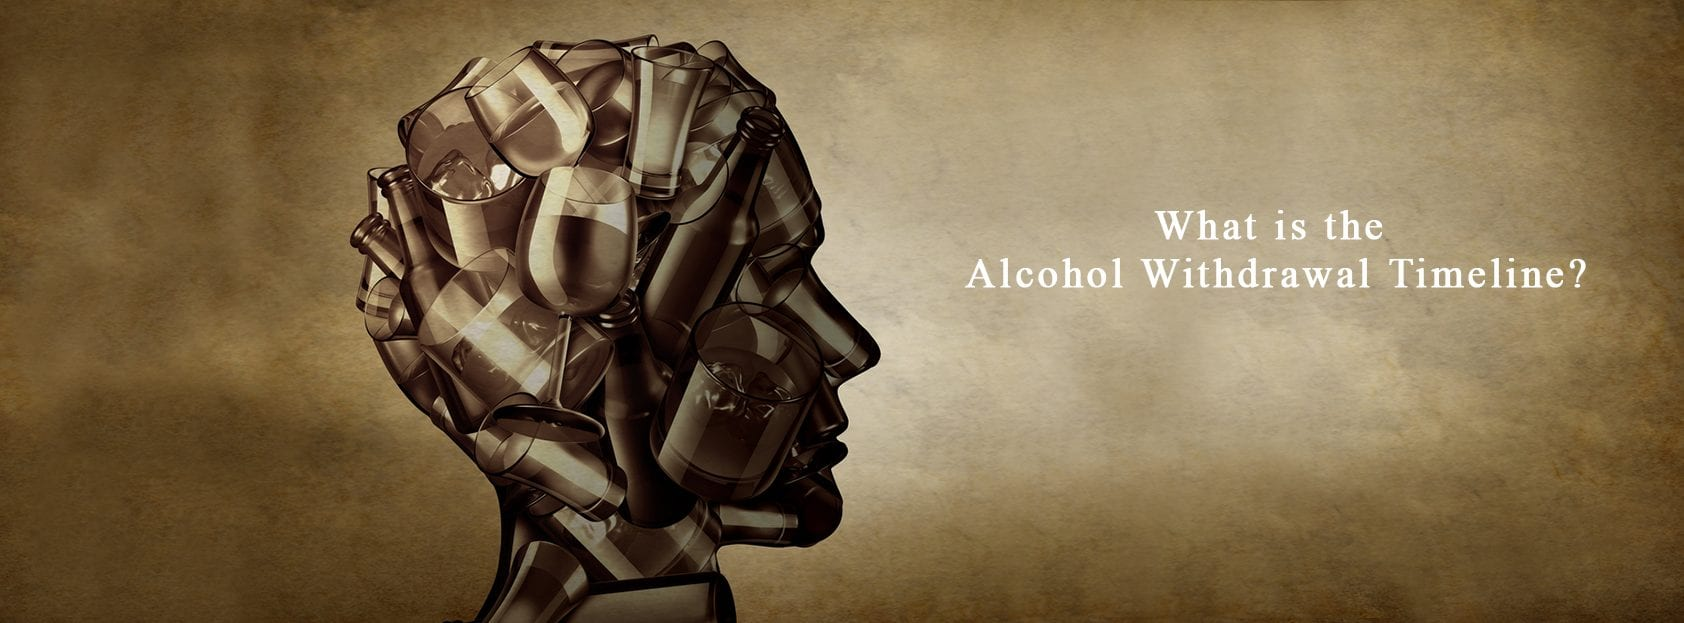 What is the Alcohol Withdrawal Timeline?